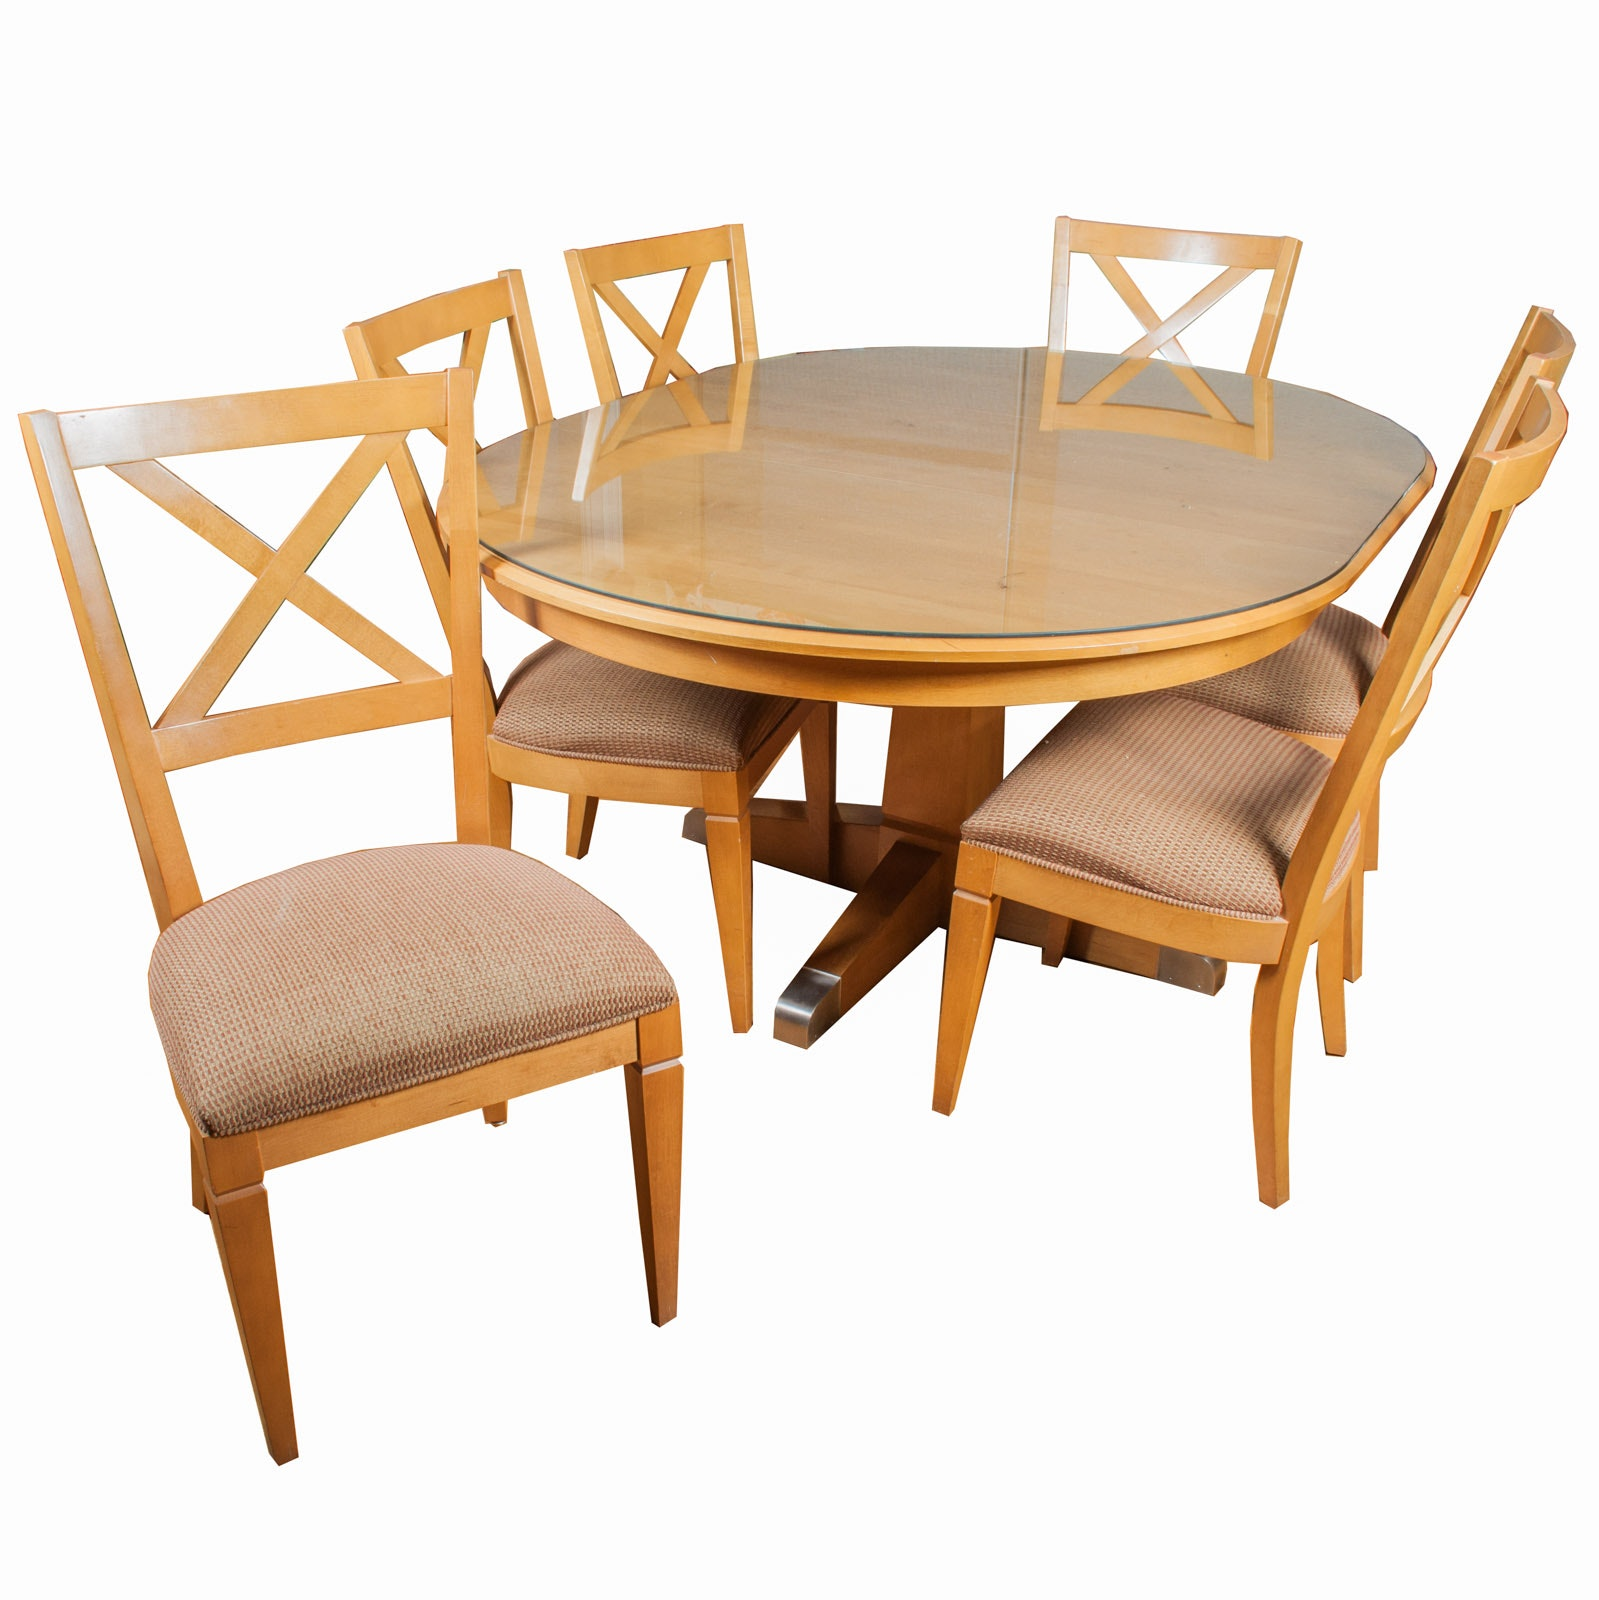 Ethan Allen Blonde Maple Table with Glass Top and Chairs